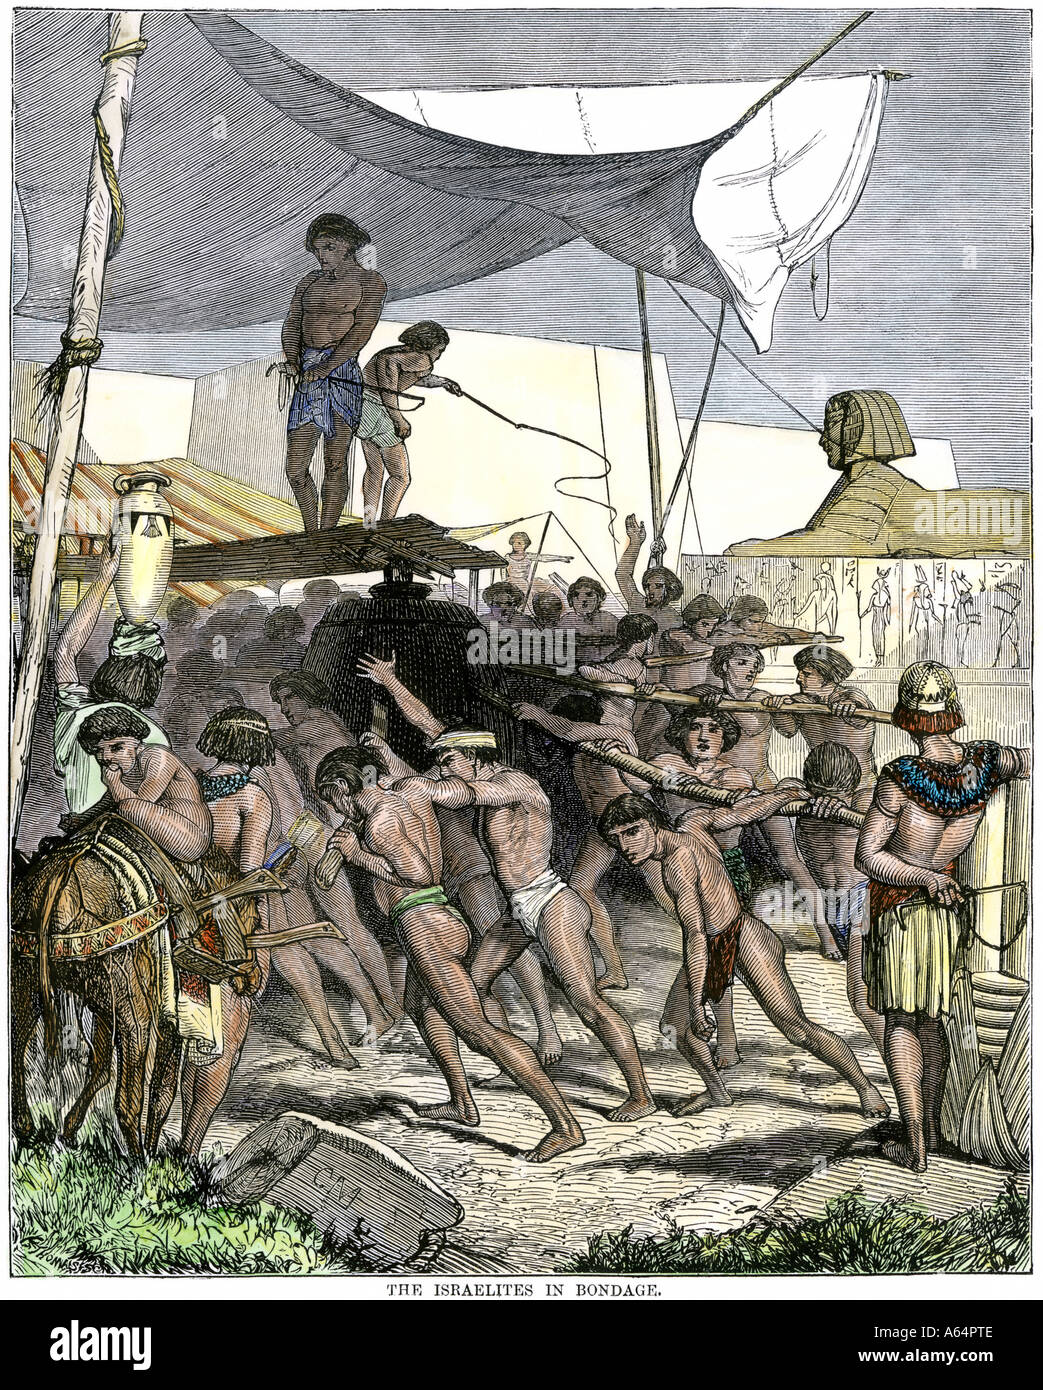 Israelite slaves building pyramids in ancient Egypt. Hand-colored woodcut - Stock Image